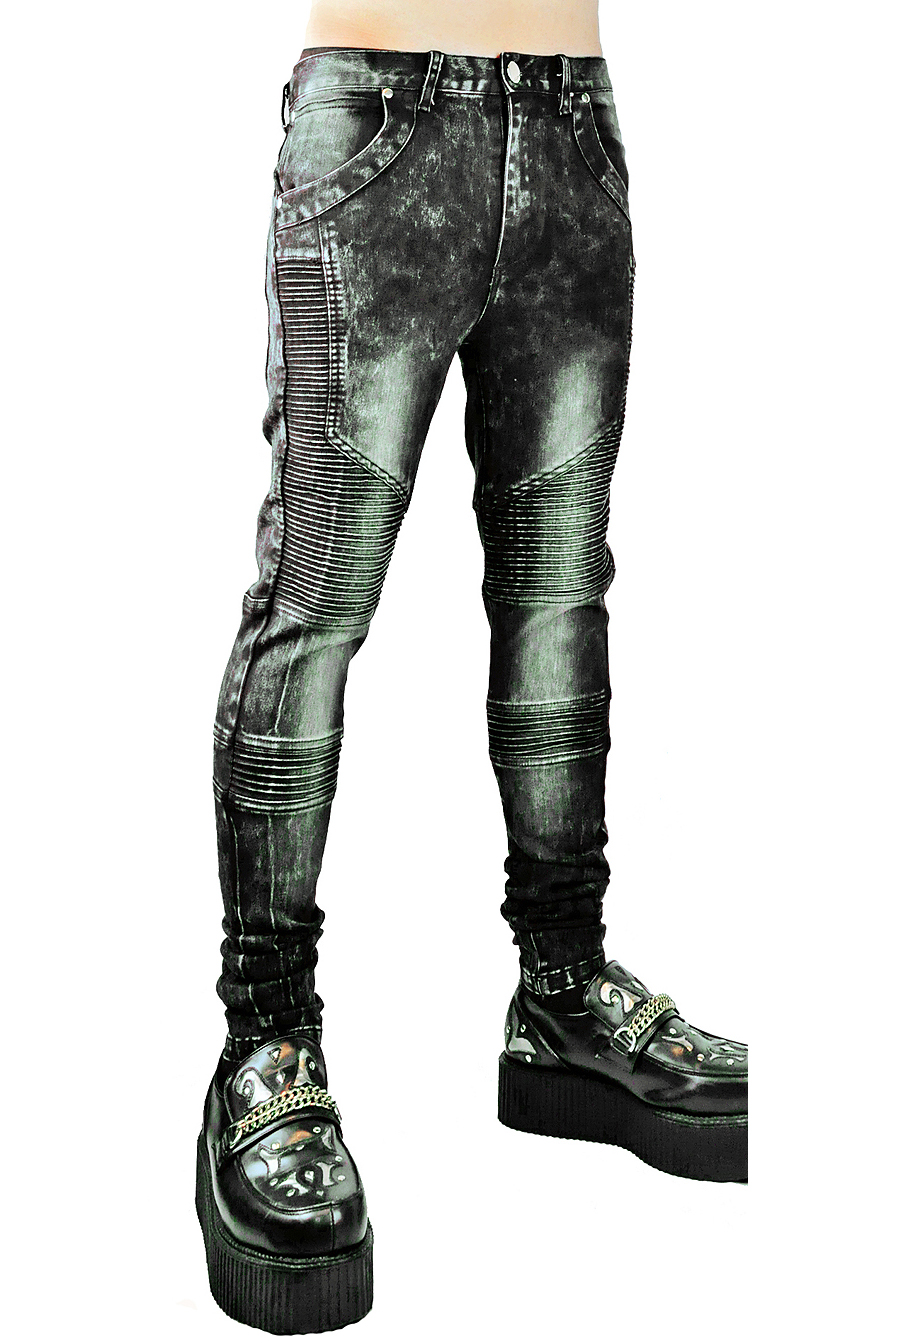 rebelsmarket_cryoflesh_5_pocket_ribbed_skinny_jeans_for_men_jeans_4.jpg